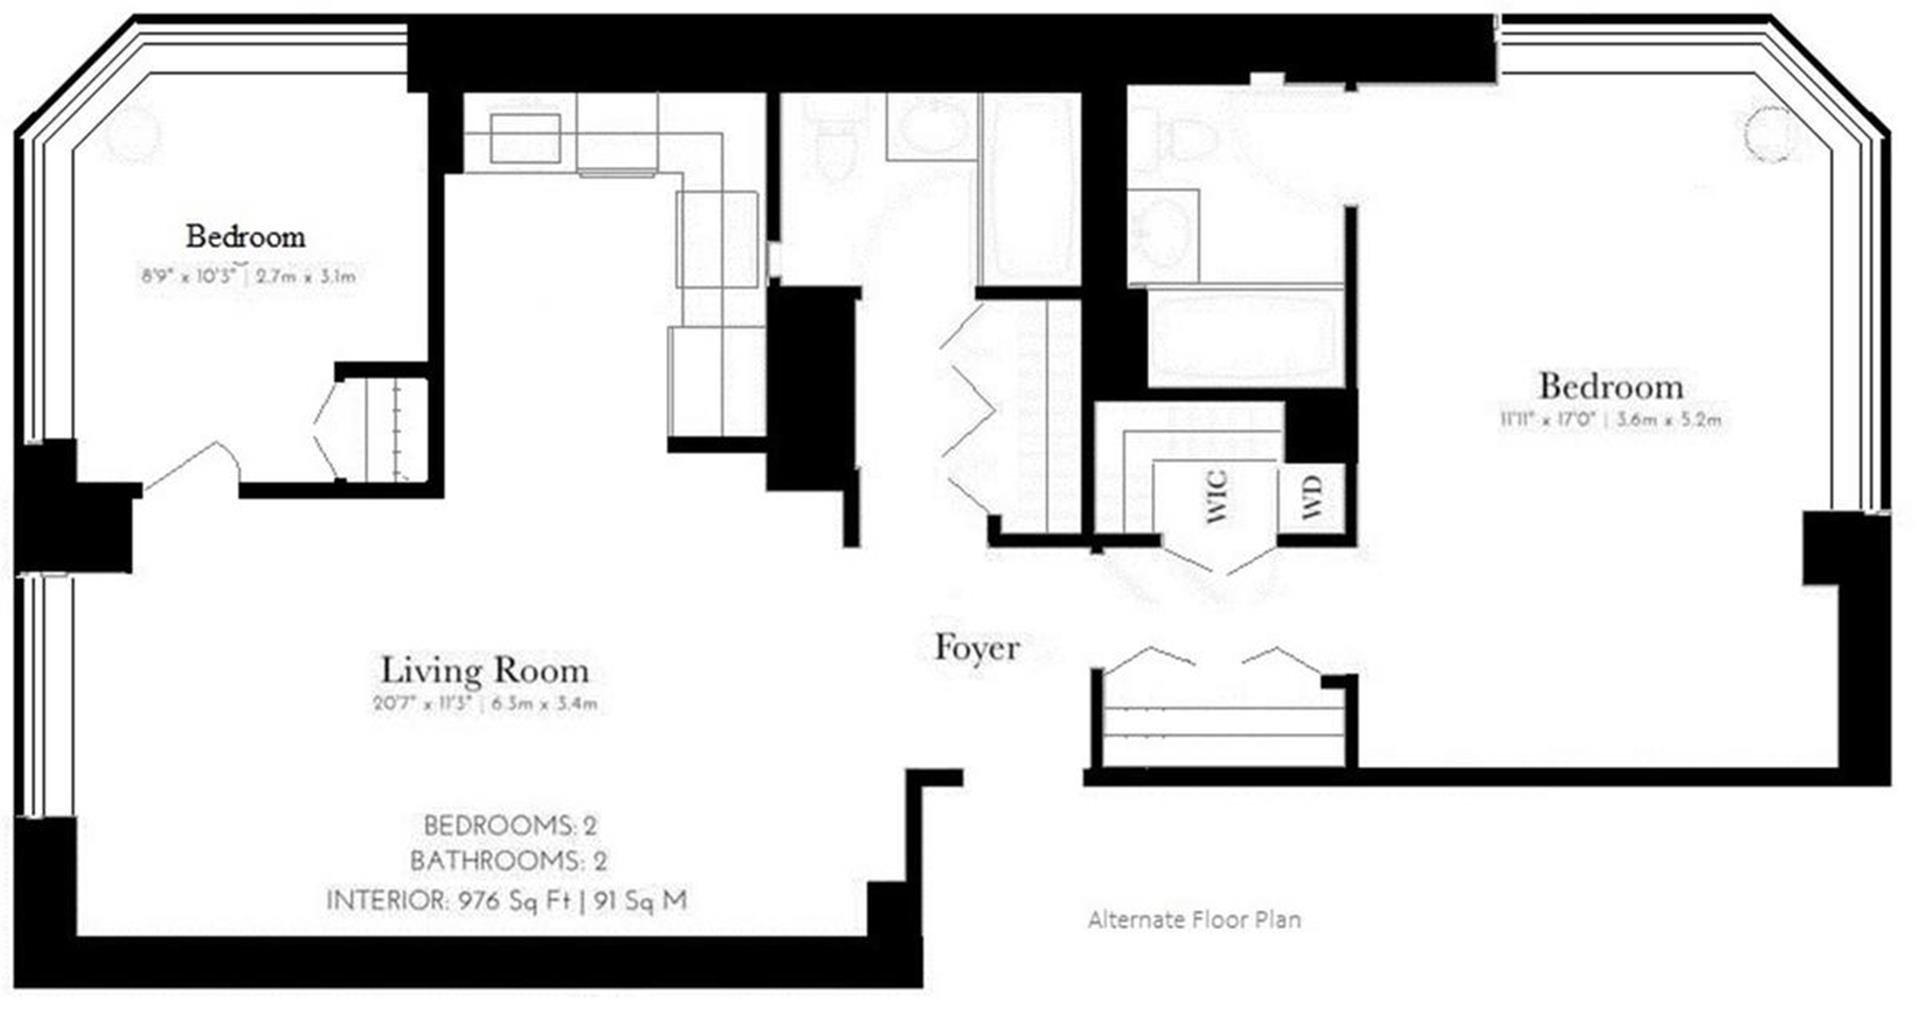 Floor plan of 300 East 64th Street, 23C - Upper East Side, New York